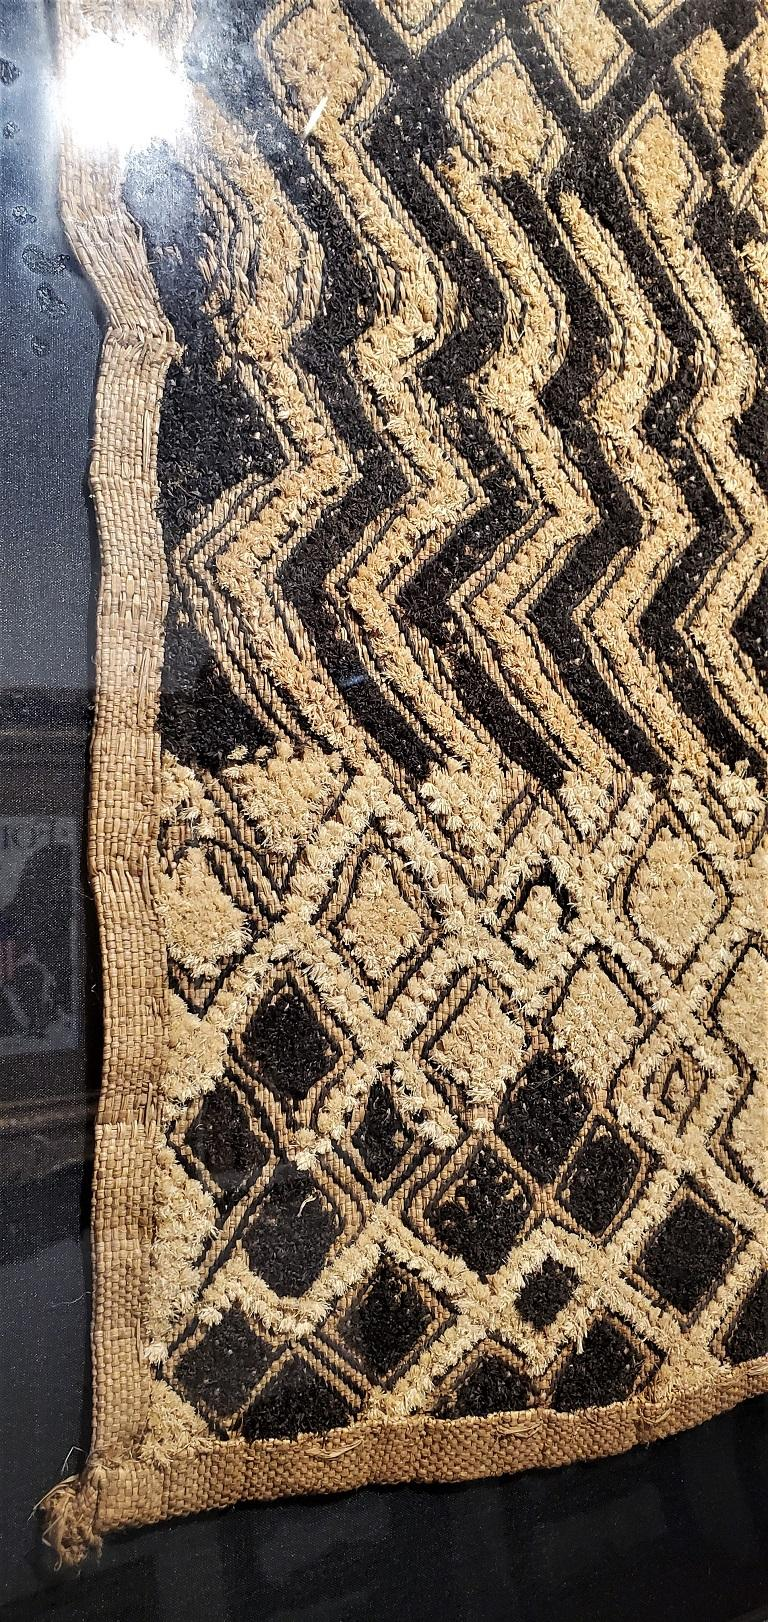 Early 20th Century Congolese Kuba Framed Textile In Good Condition For Sale In Dallas, TX